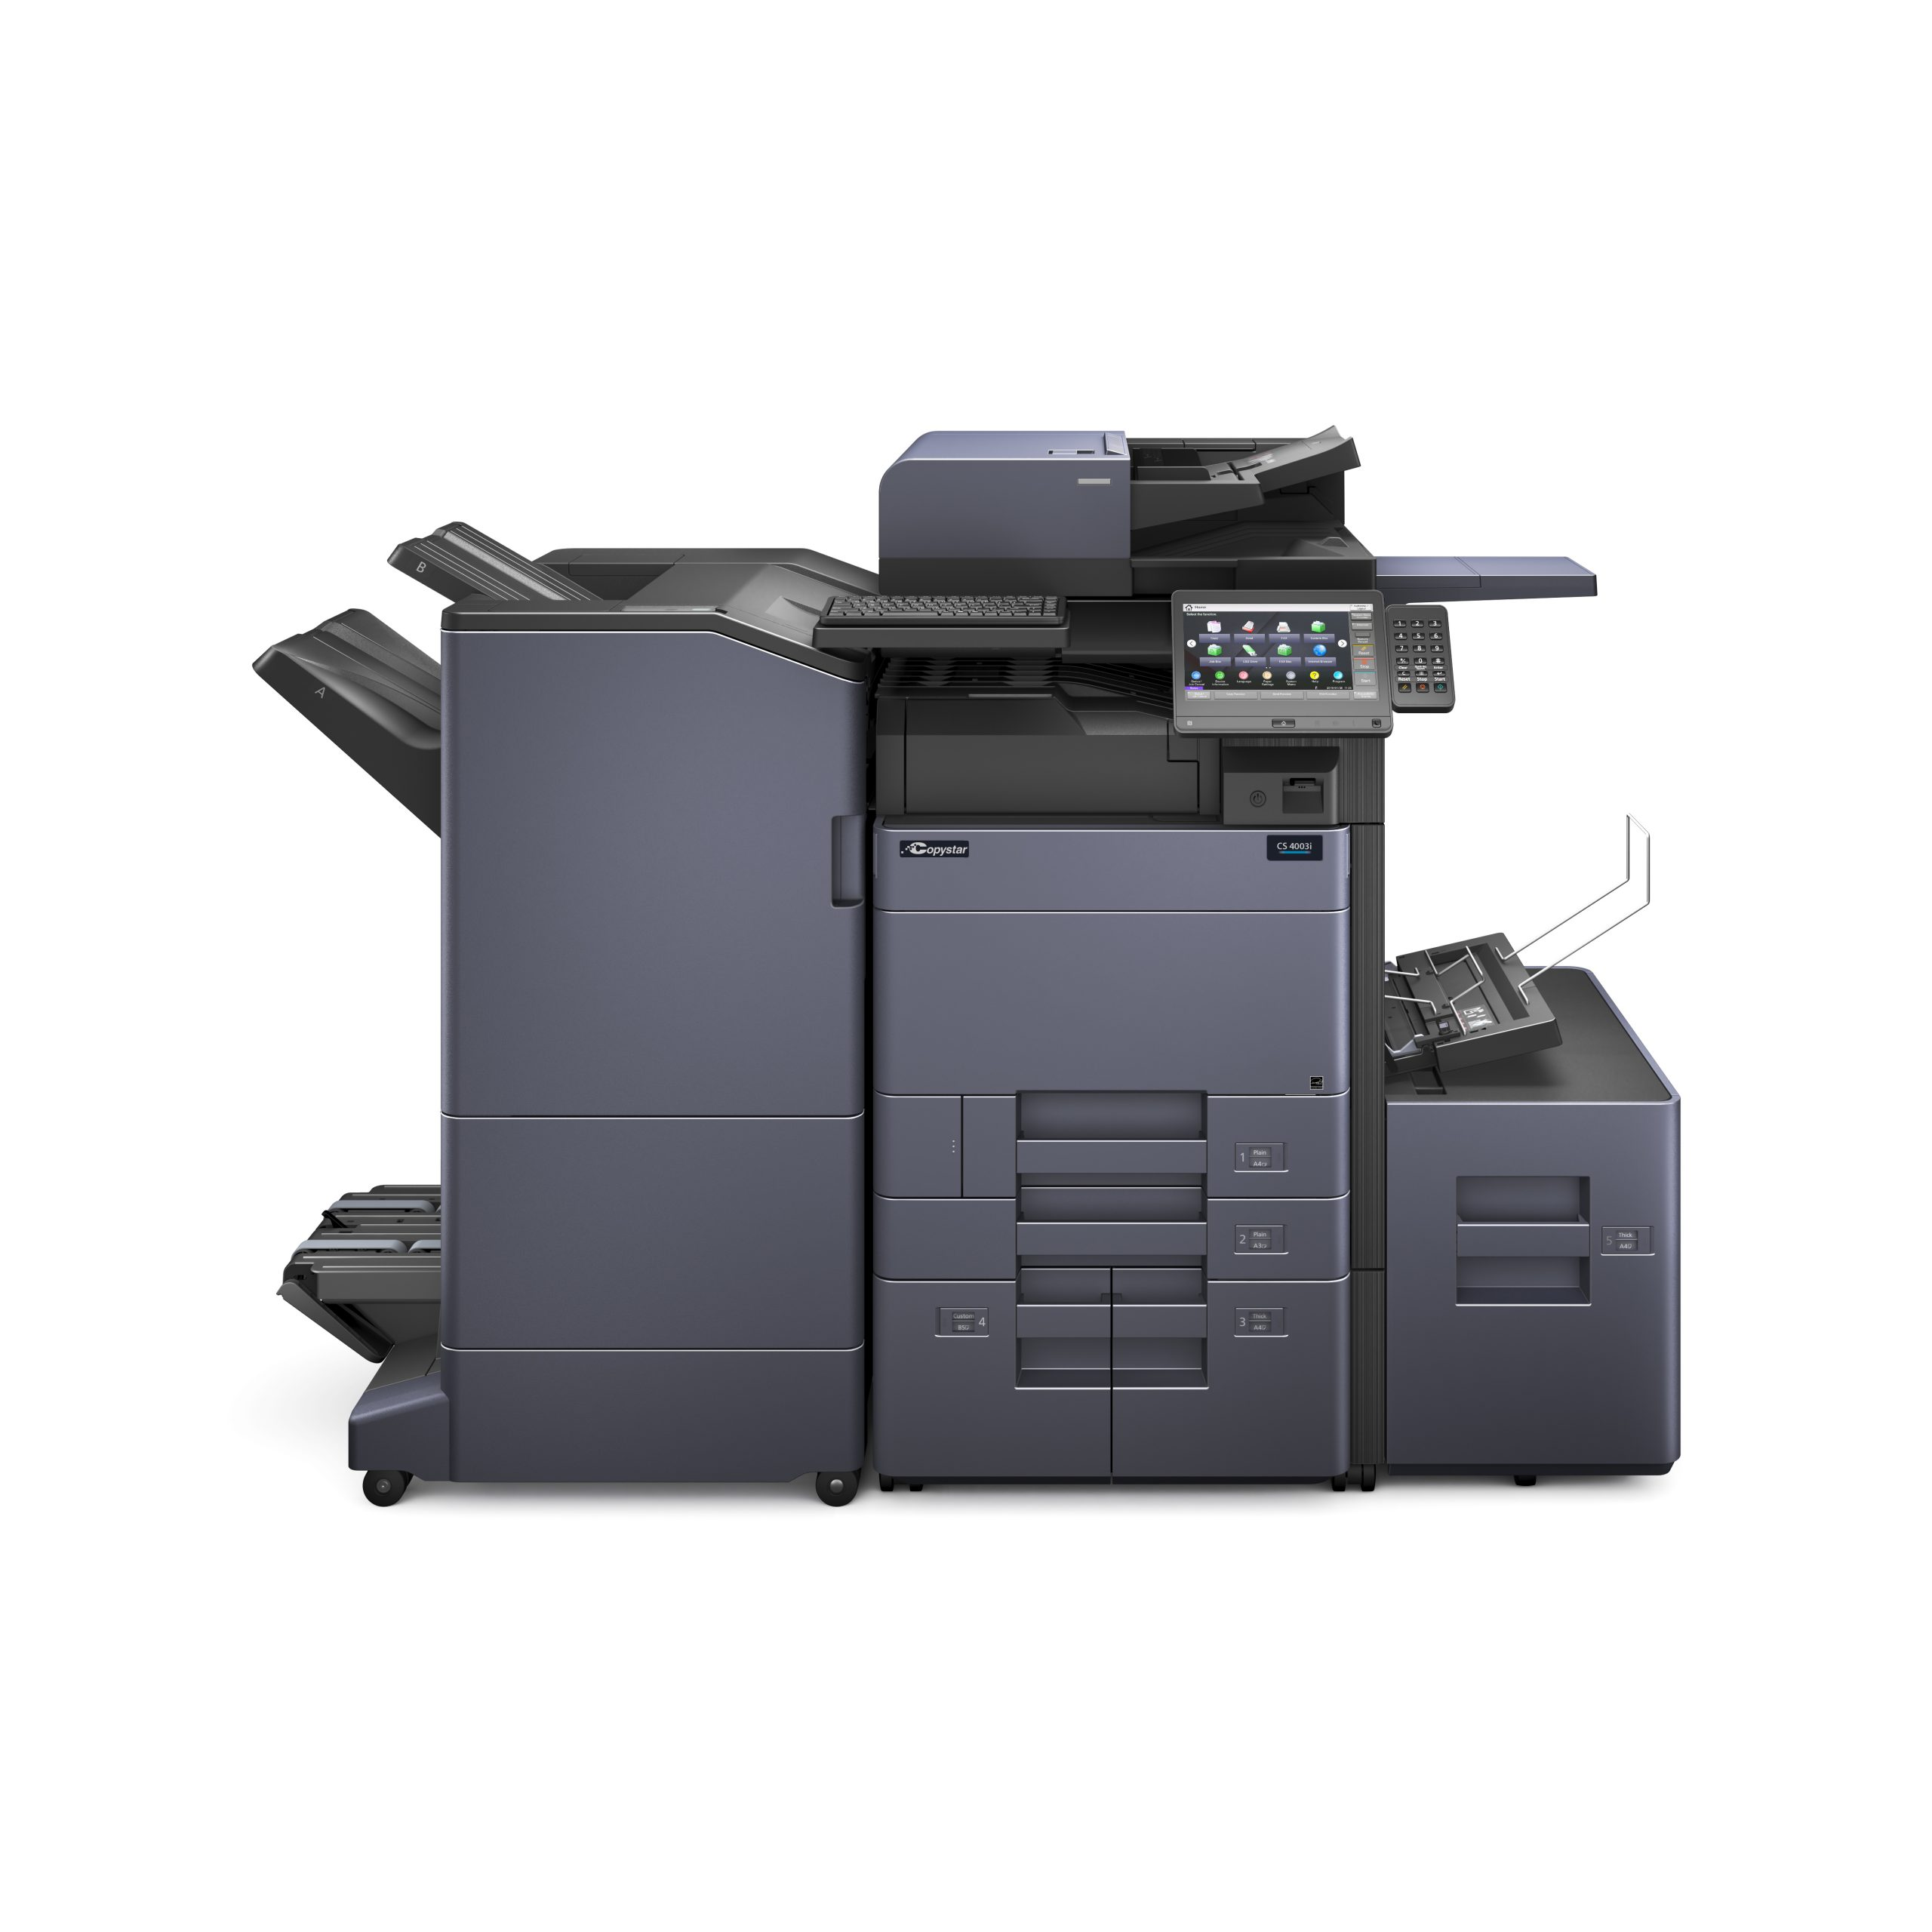 kyocera CS_4003i Copy Machine Rental Minnesota